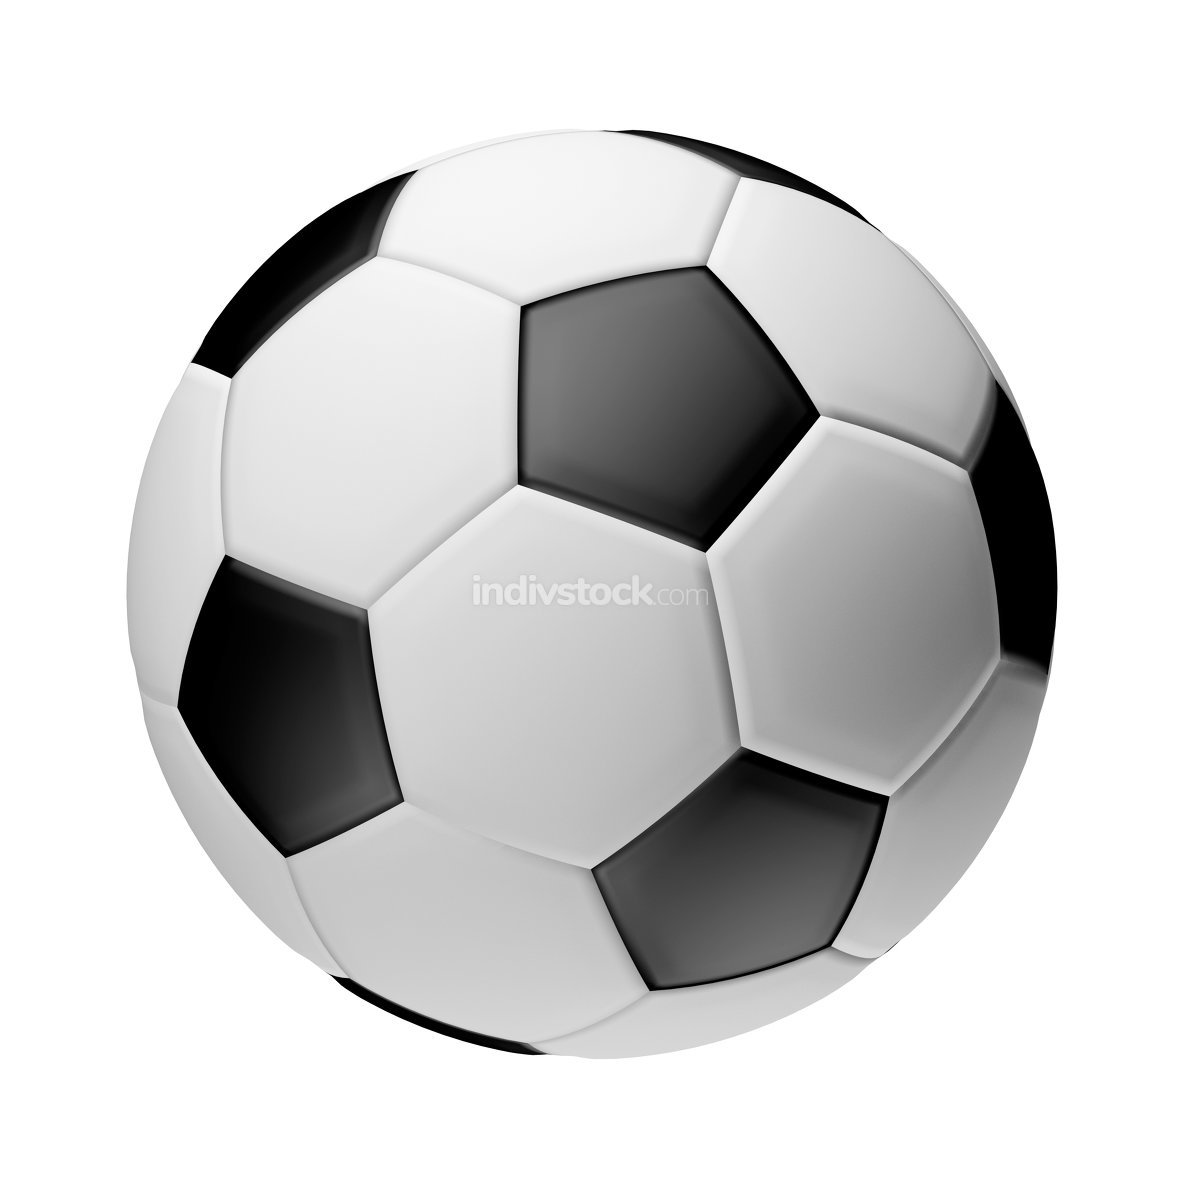 football ball 3d render isolated ball